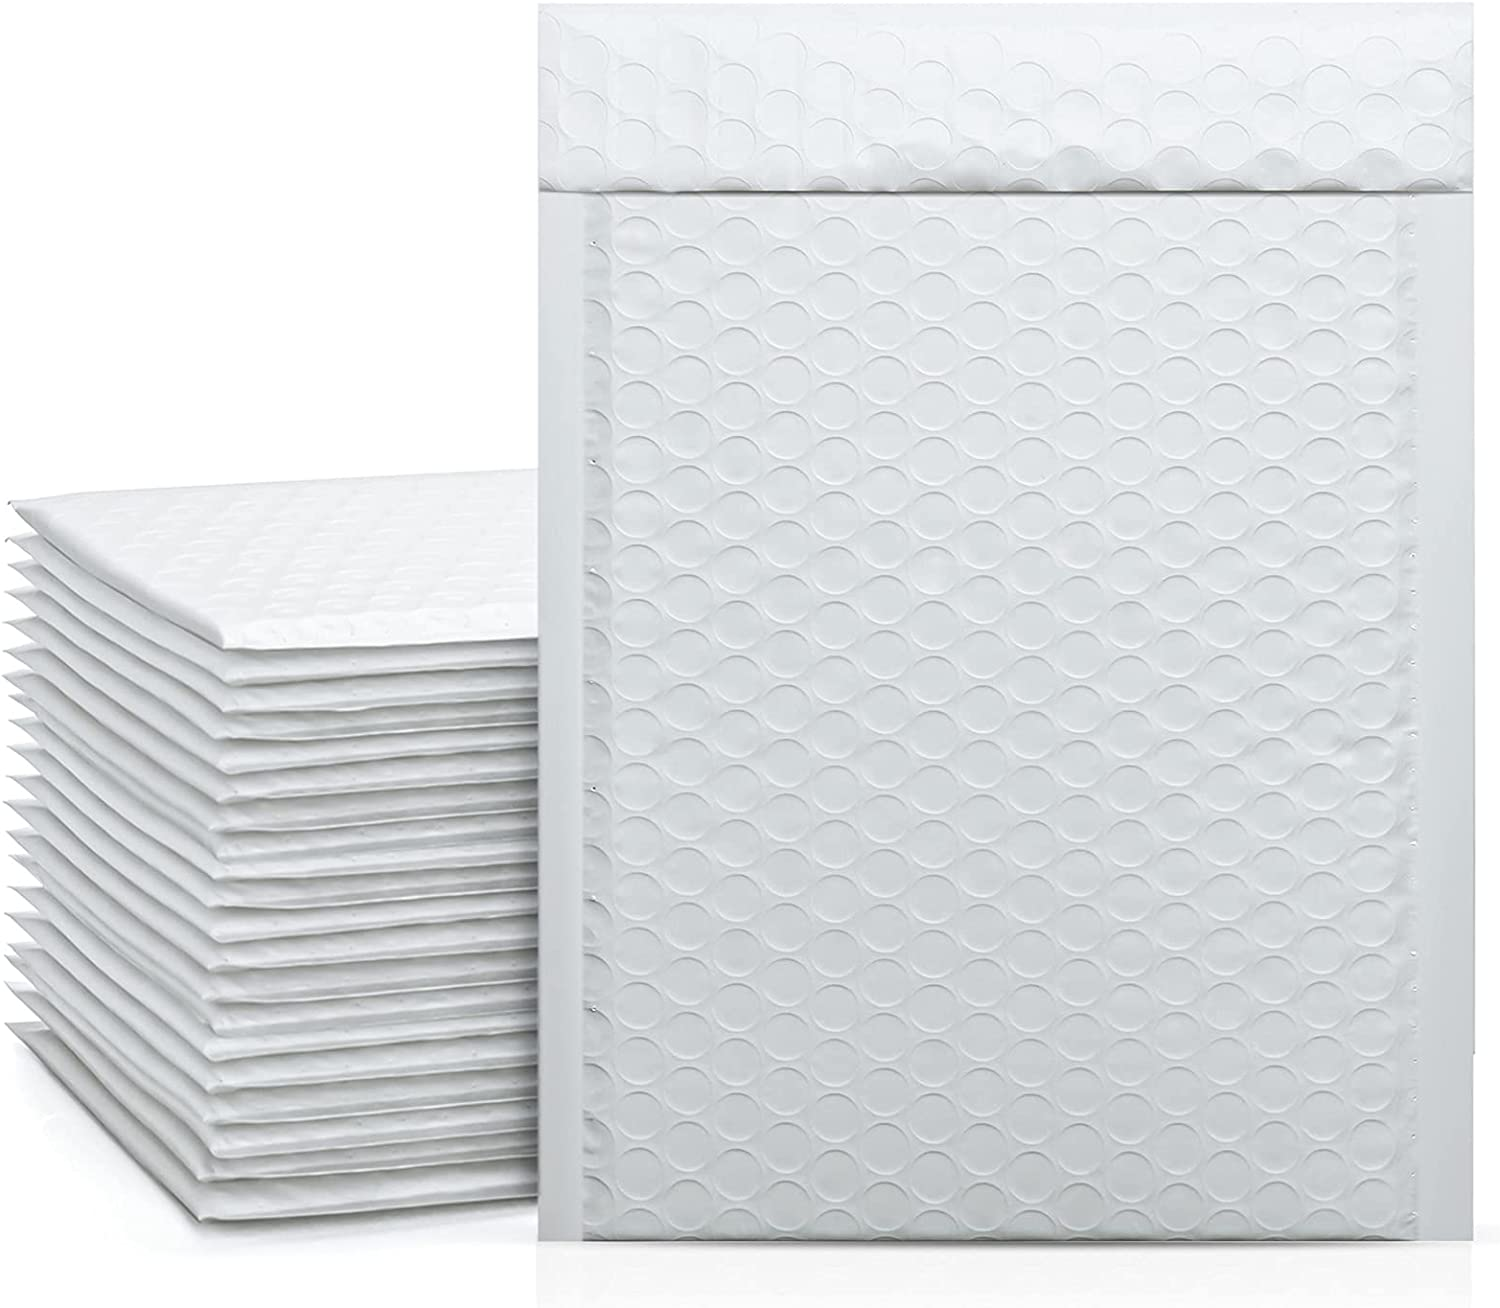 Metronic 50Pcs Poly Bubble Mailers, 6X10 Inch Padded Envelopes Bulk #0, Bubble Lined Wrap Polymailer Bags for Shipping/ Packaging/ Mailing Self Seal -White : Office Products